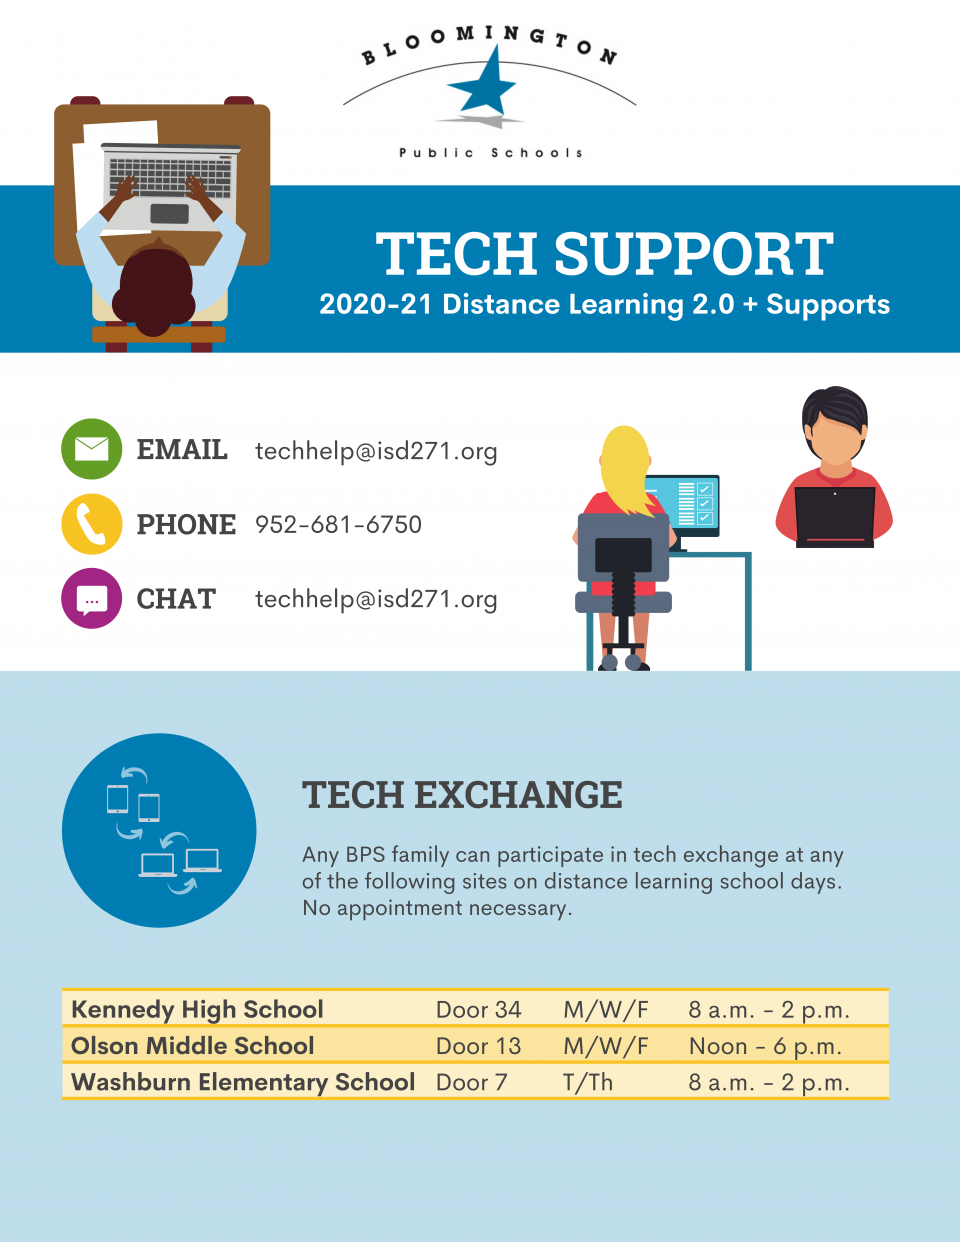 Bloomington Public Schools Tech Support: 2020-21 Distance Learning 2.0 + Supports / Email: techhelp@isd271.org; Phone: 952-681-6750; Chat: techhelp@isd271.org / Tech Exchange: Any BPS family can participate in tech exchange at any of the following sites on distance learning school days. No appointment necessary. Kennedy High School, Door 34 M/W/F from 8 a.m. - 2 p.m. / Olson Middle School Door 13 M/W/F from Noon - 6 p.m. / Washburn Elementary School Door 7 T/Th from 8 a.m. - 2 p.m.